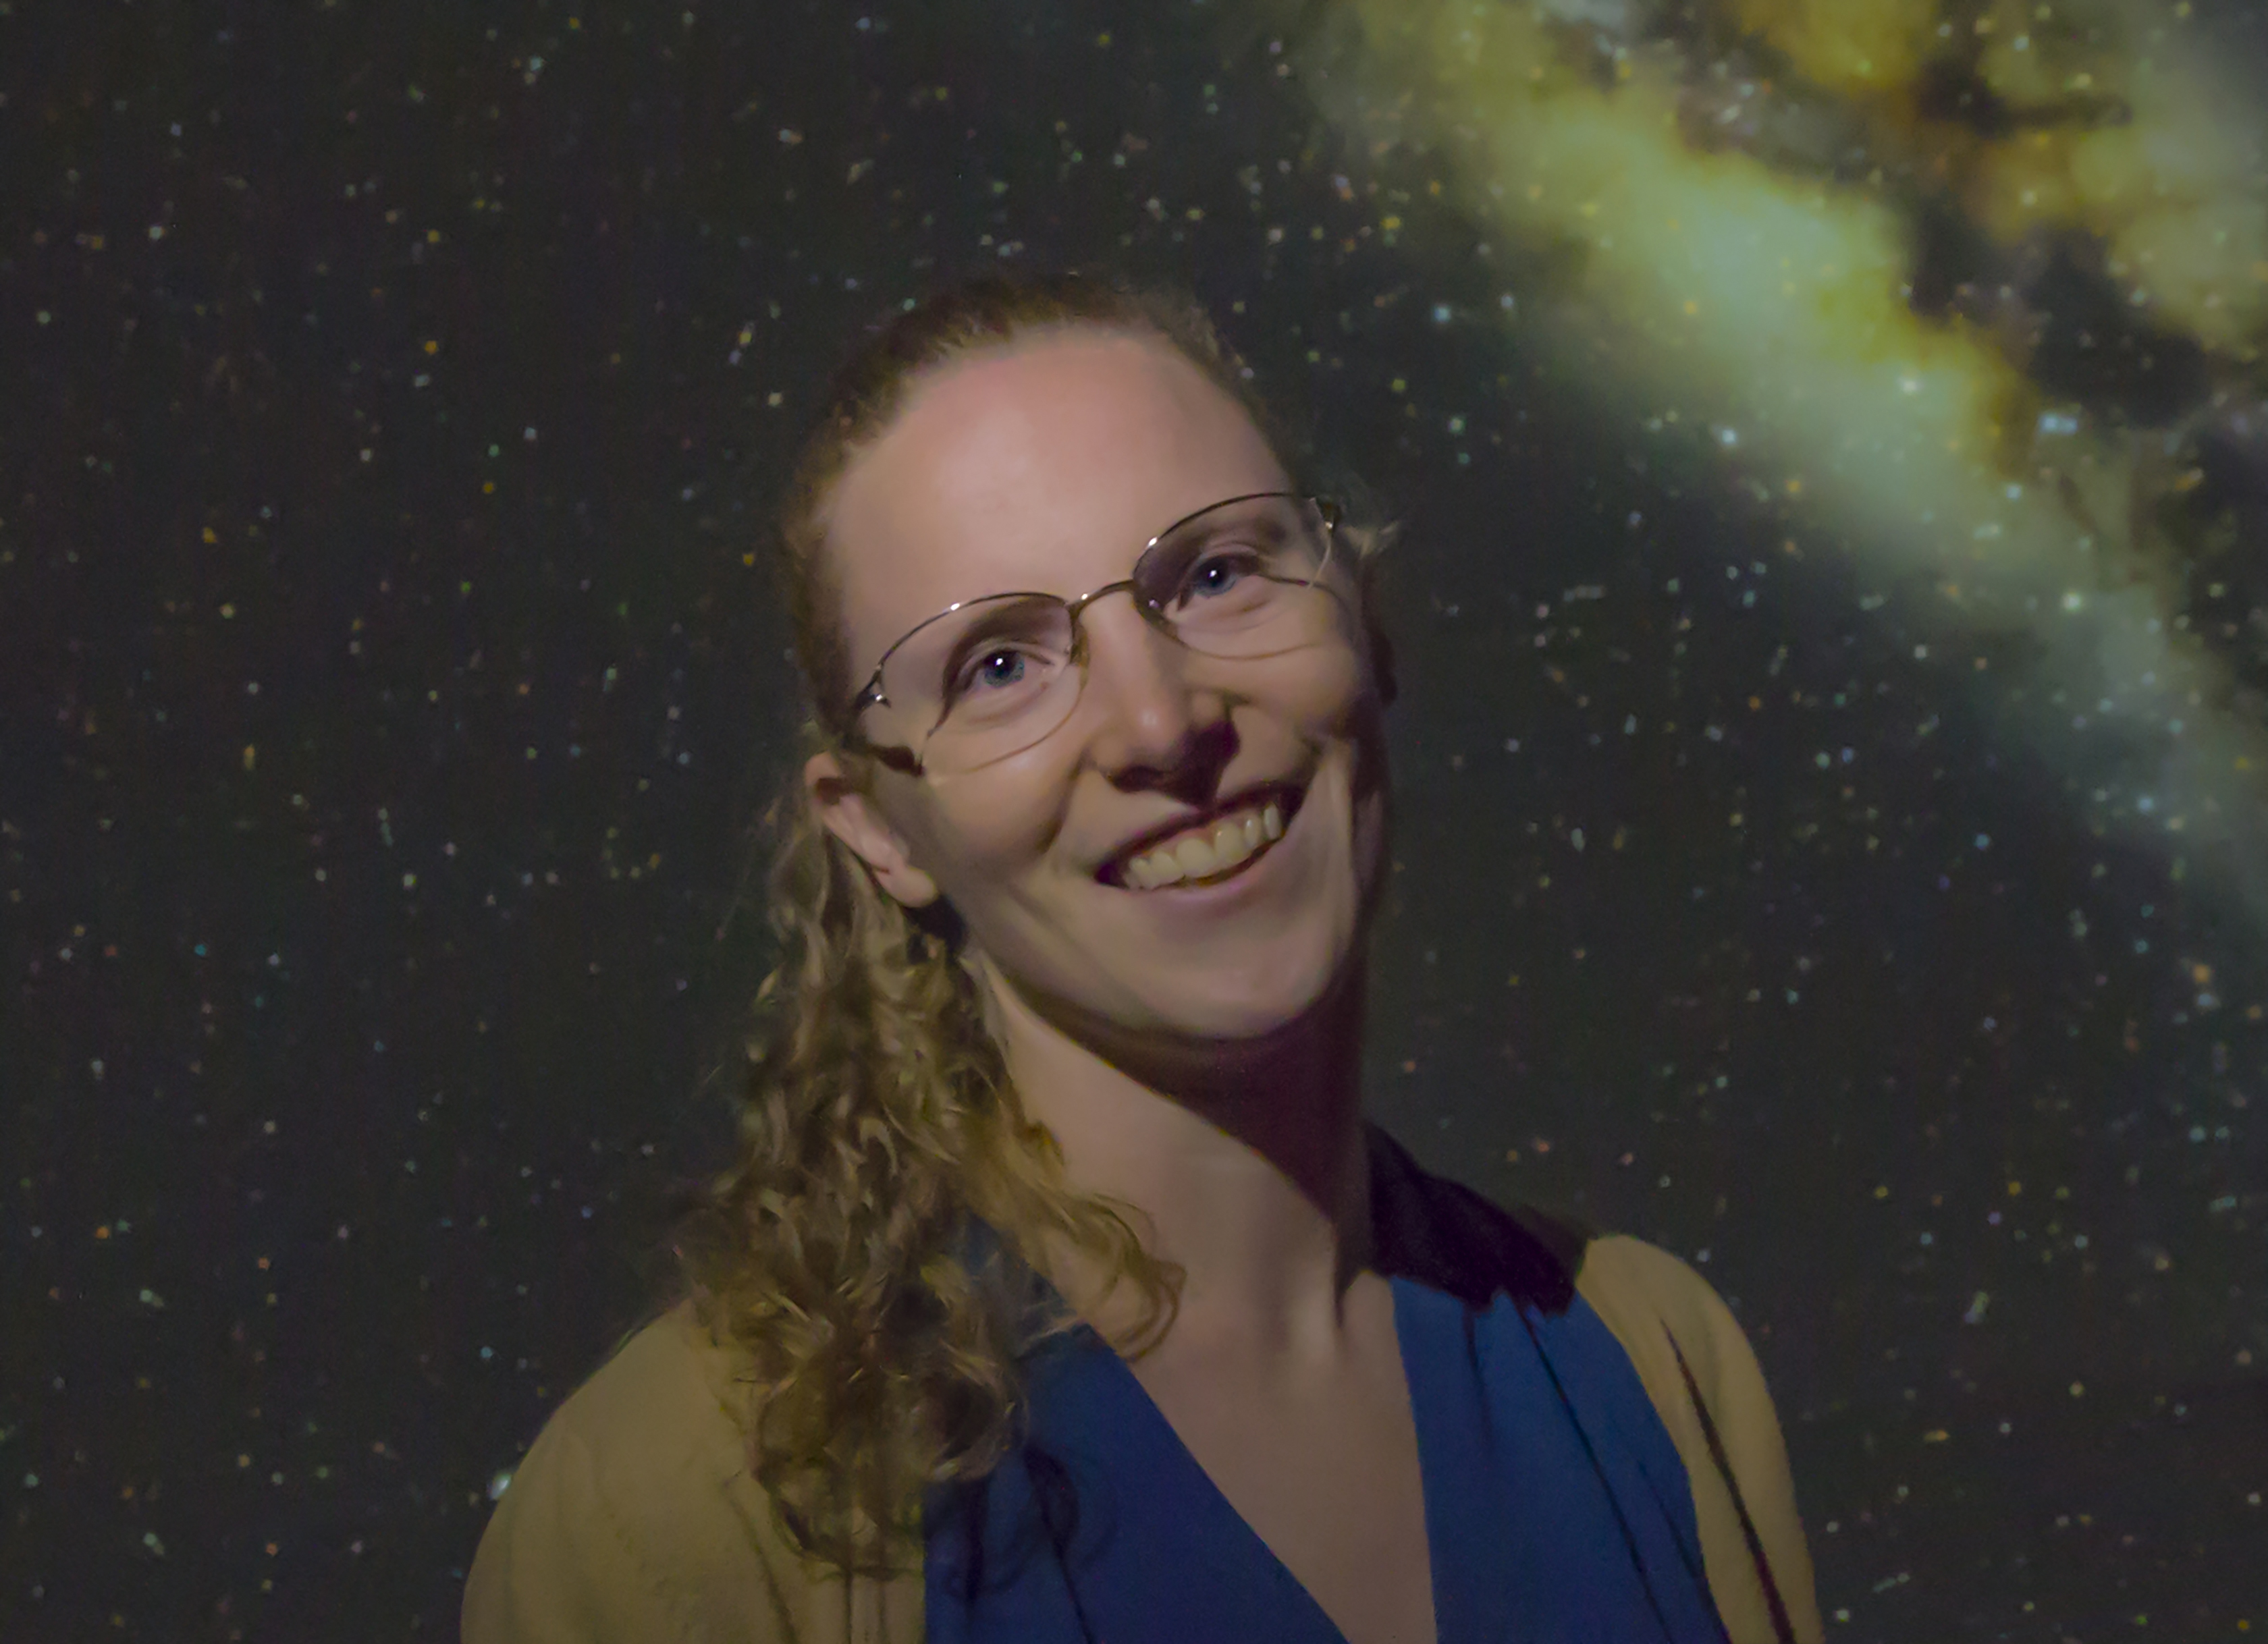 portrait of Shauna Edson with galaxy backdrop